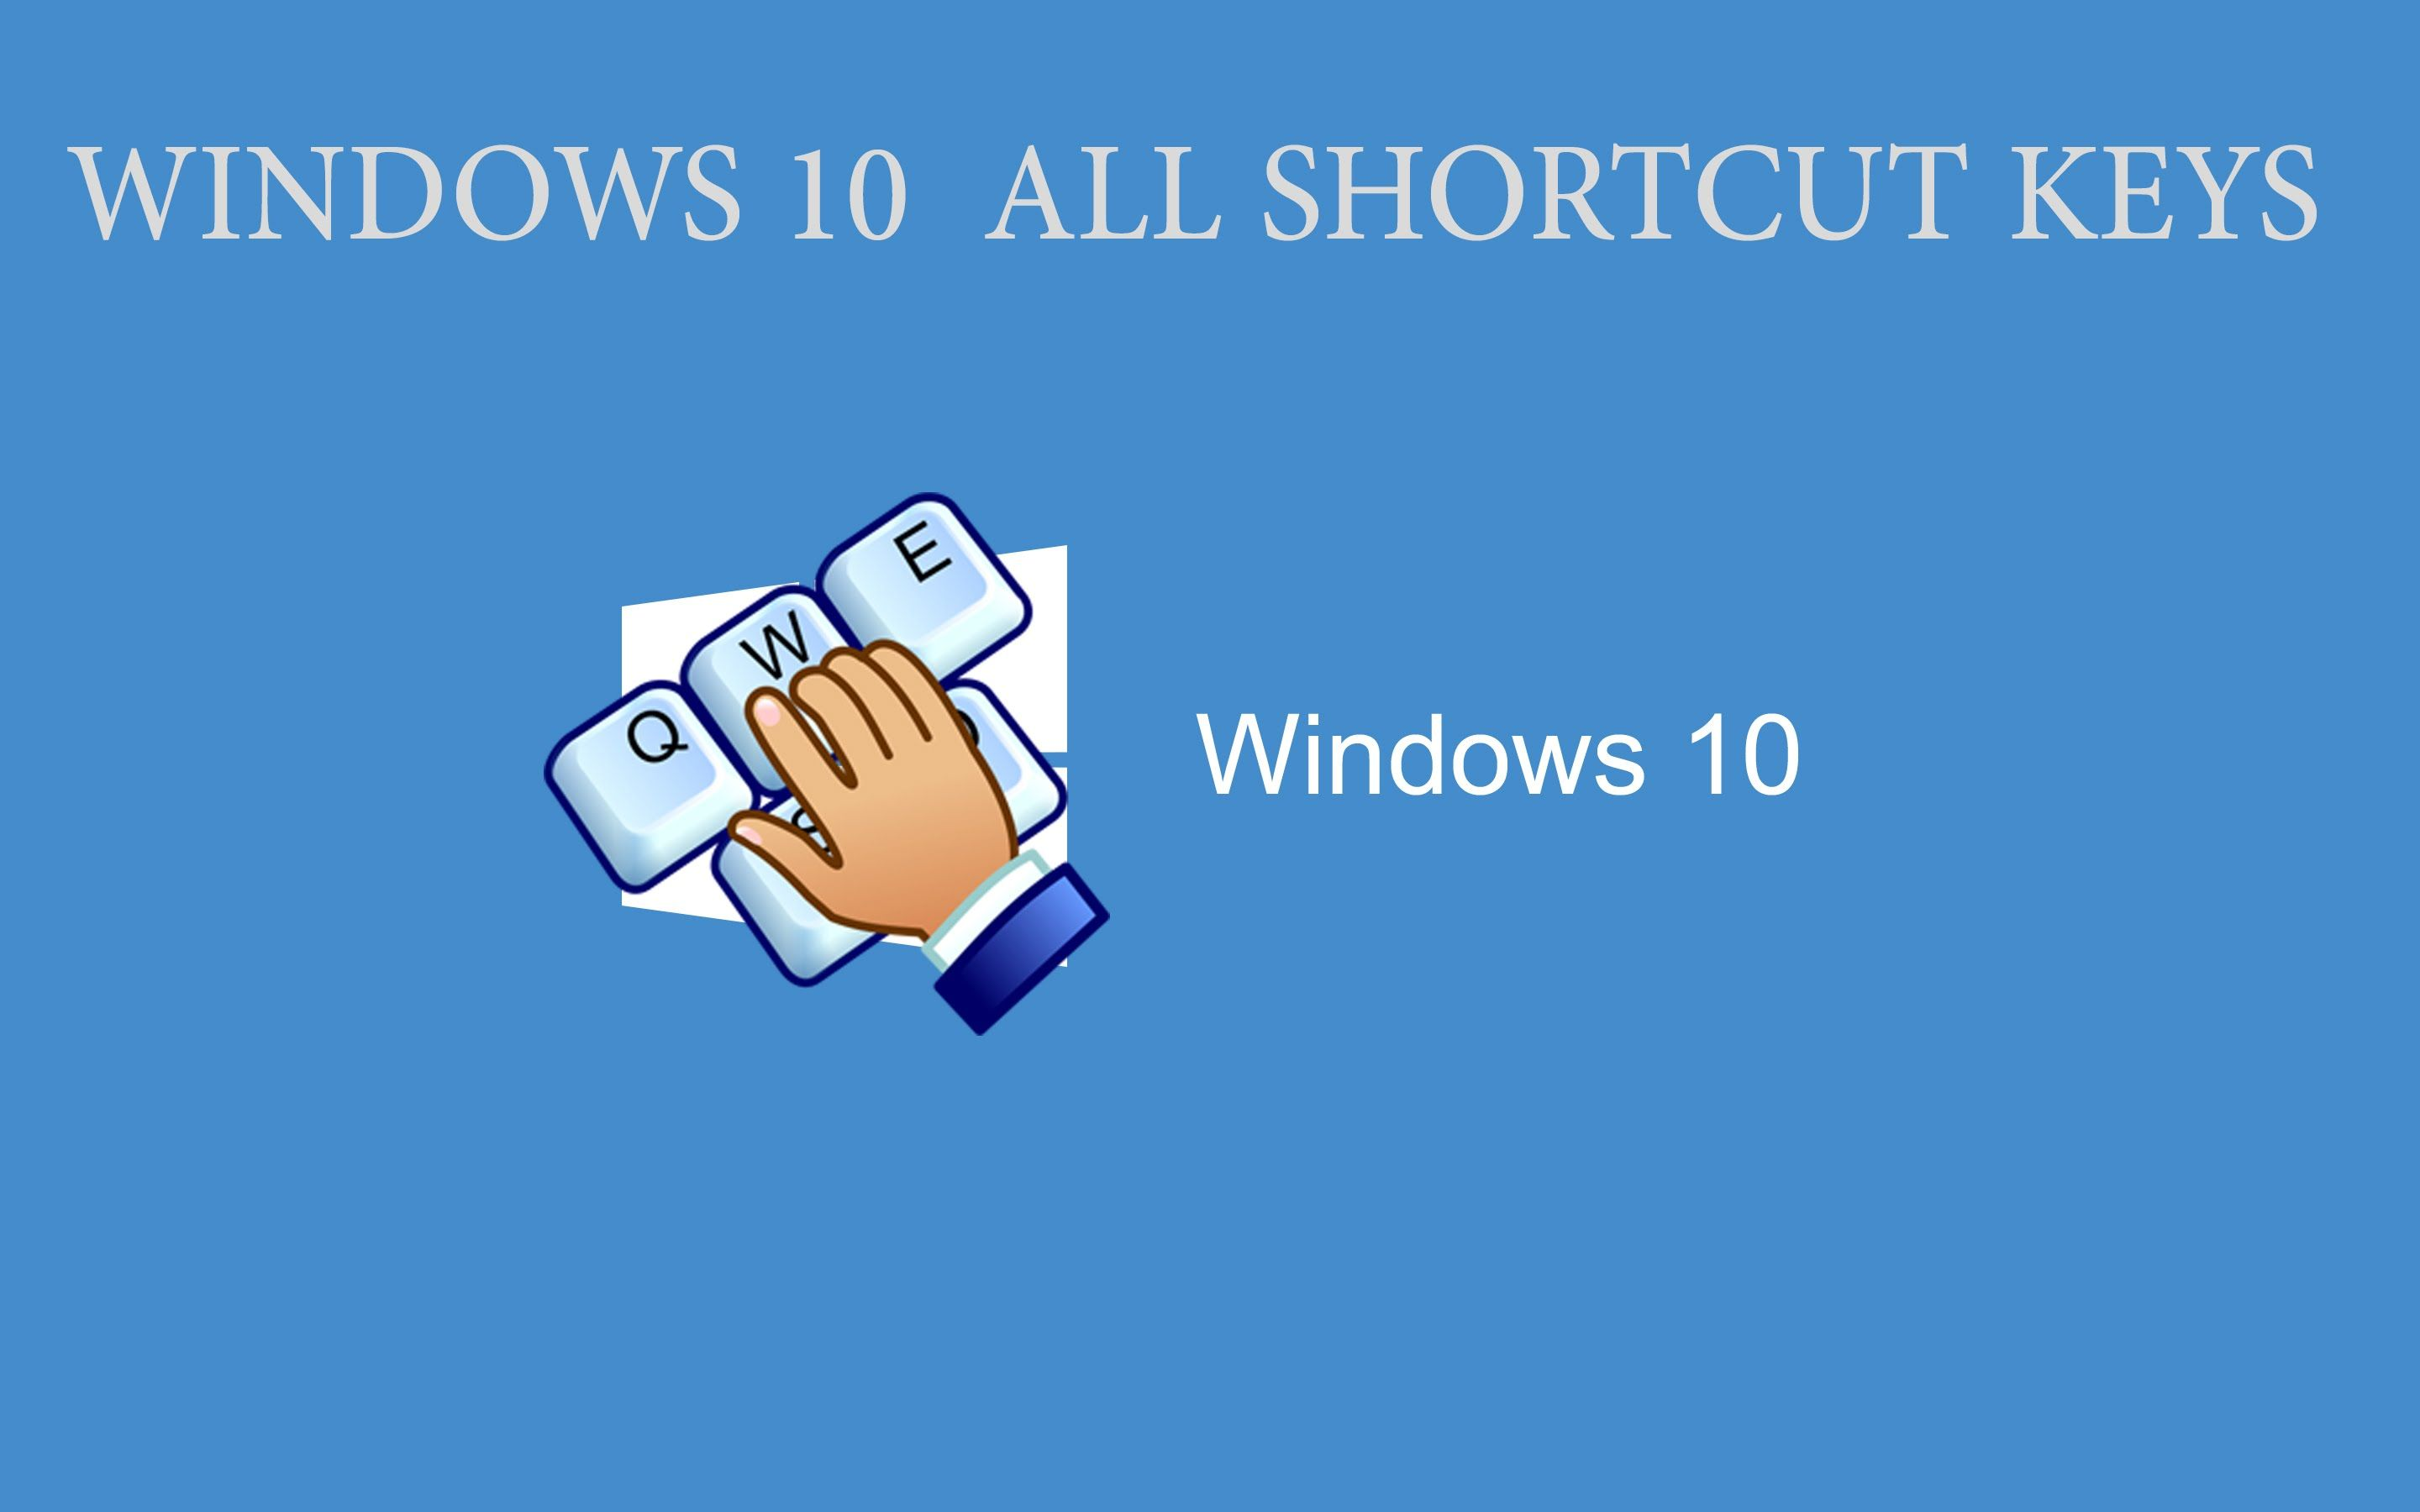 39 Windows 10 Ultimate Shortcuts List Top keyboard